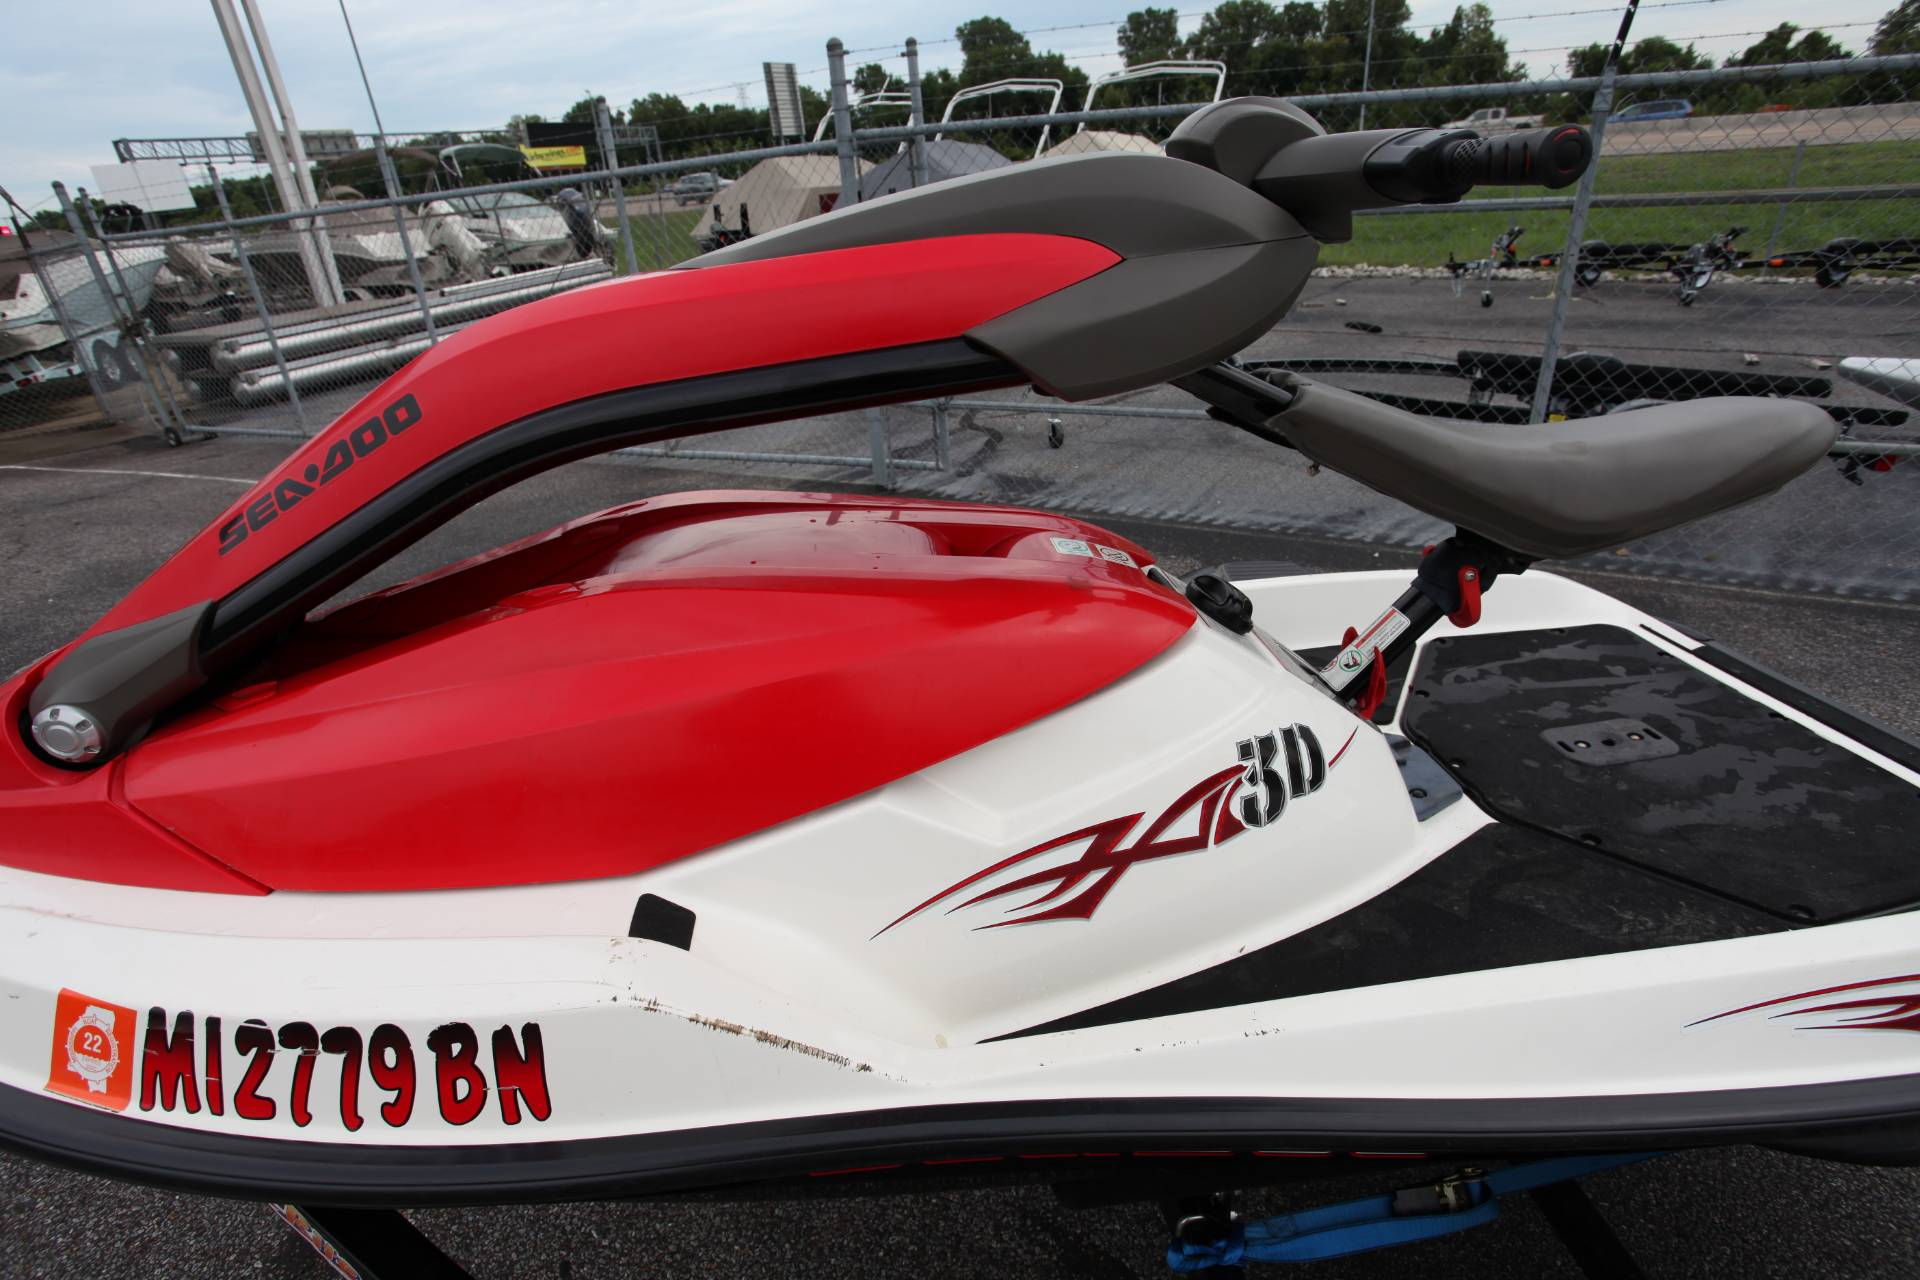 2005 Sea-Doo 3D™ Vert & Moto in Memphis, Tennessee - Photo 4